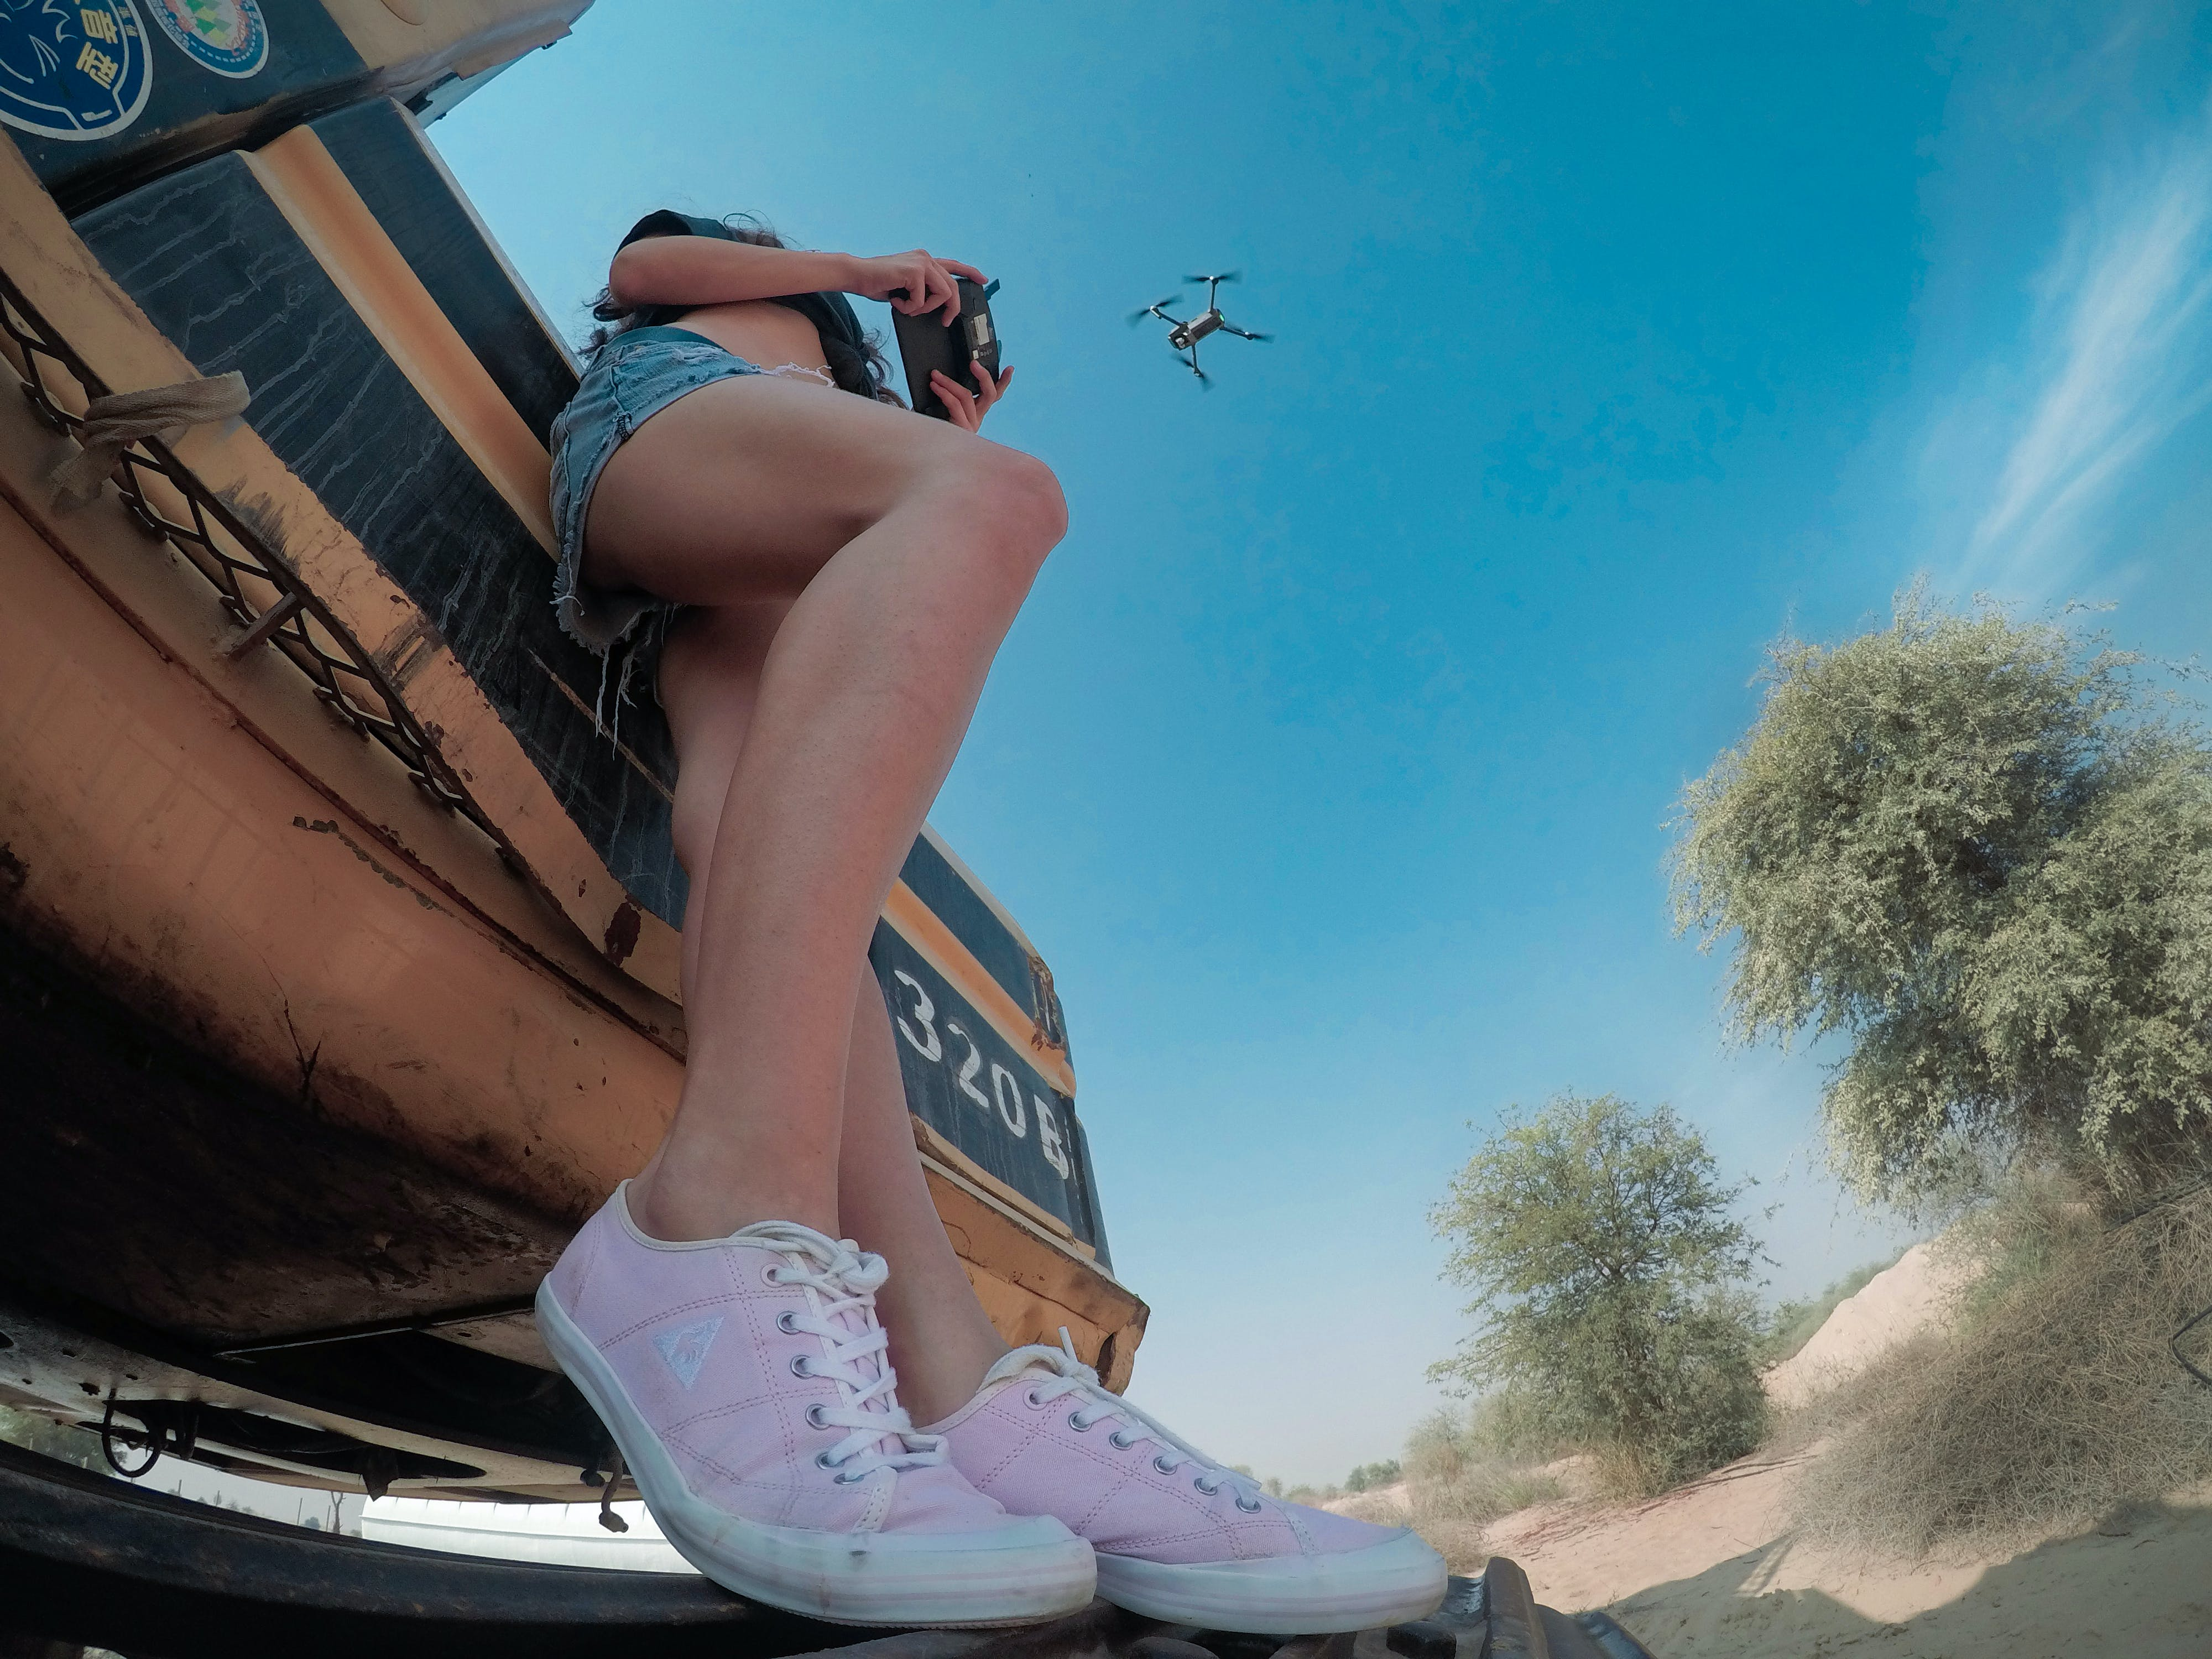 of #outdoorchallenge, asian girl, blue sky, drone